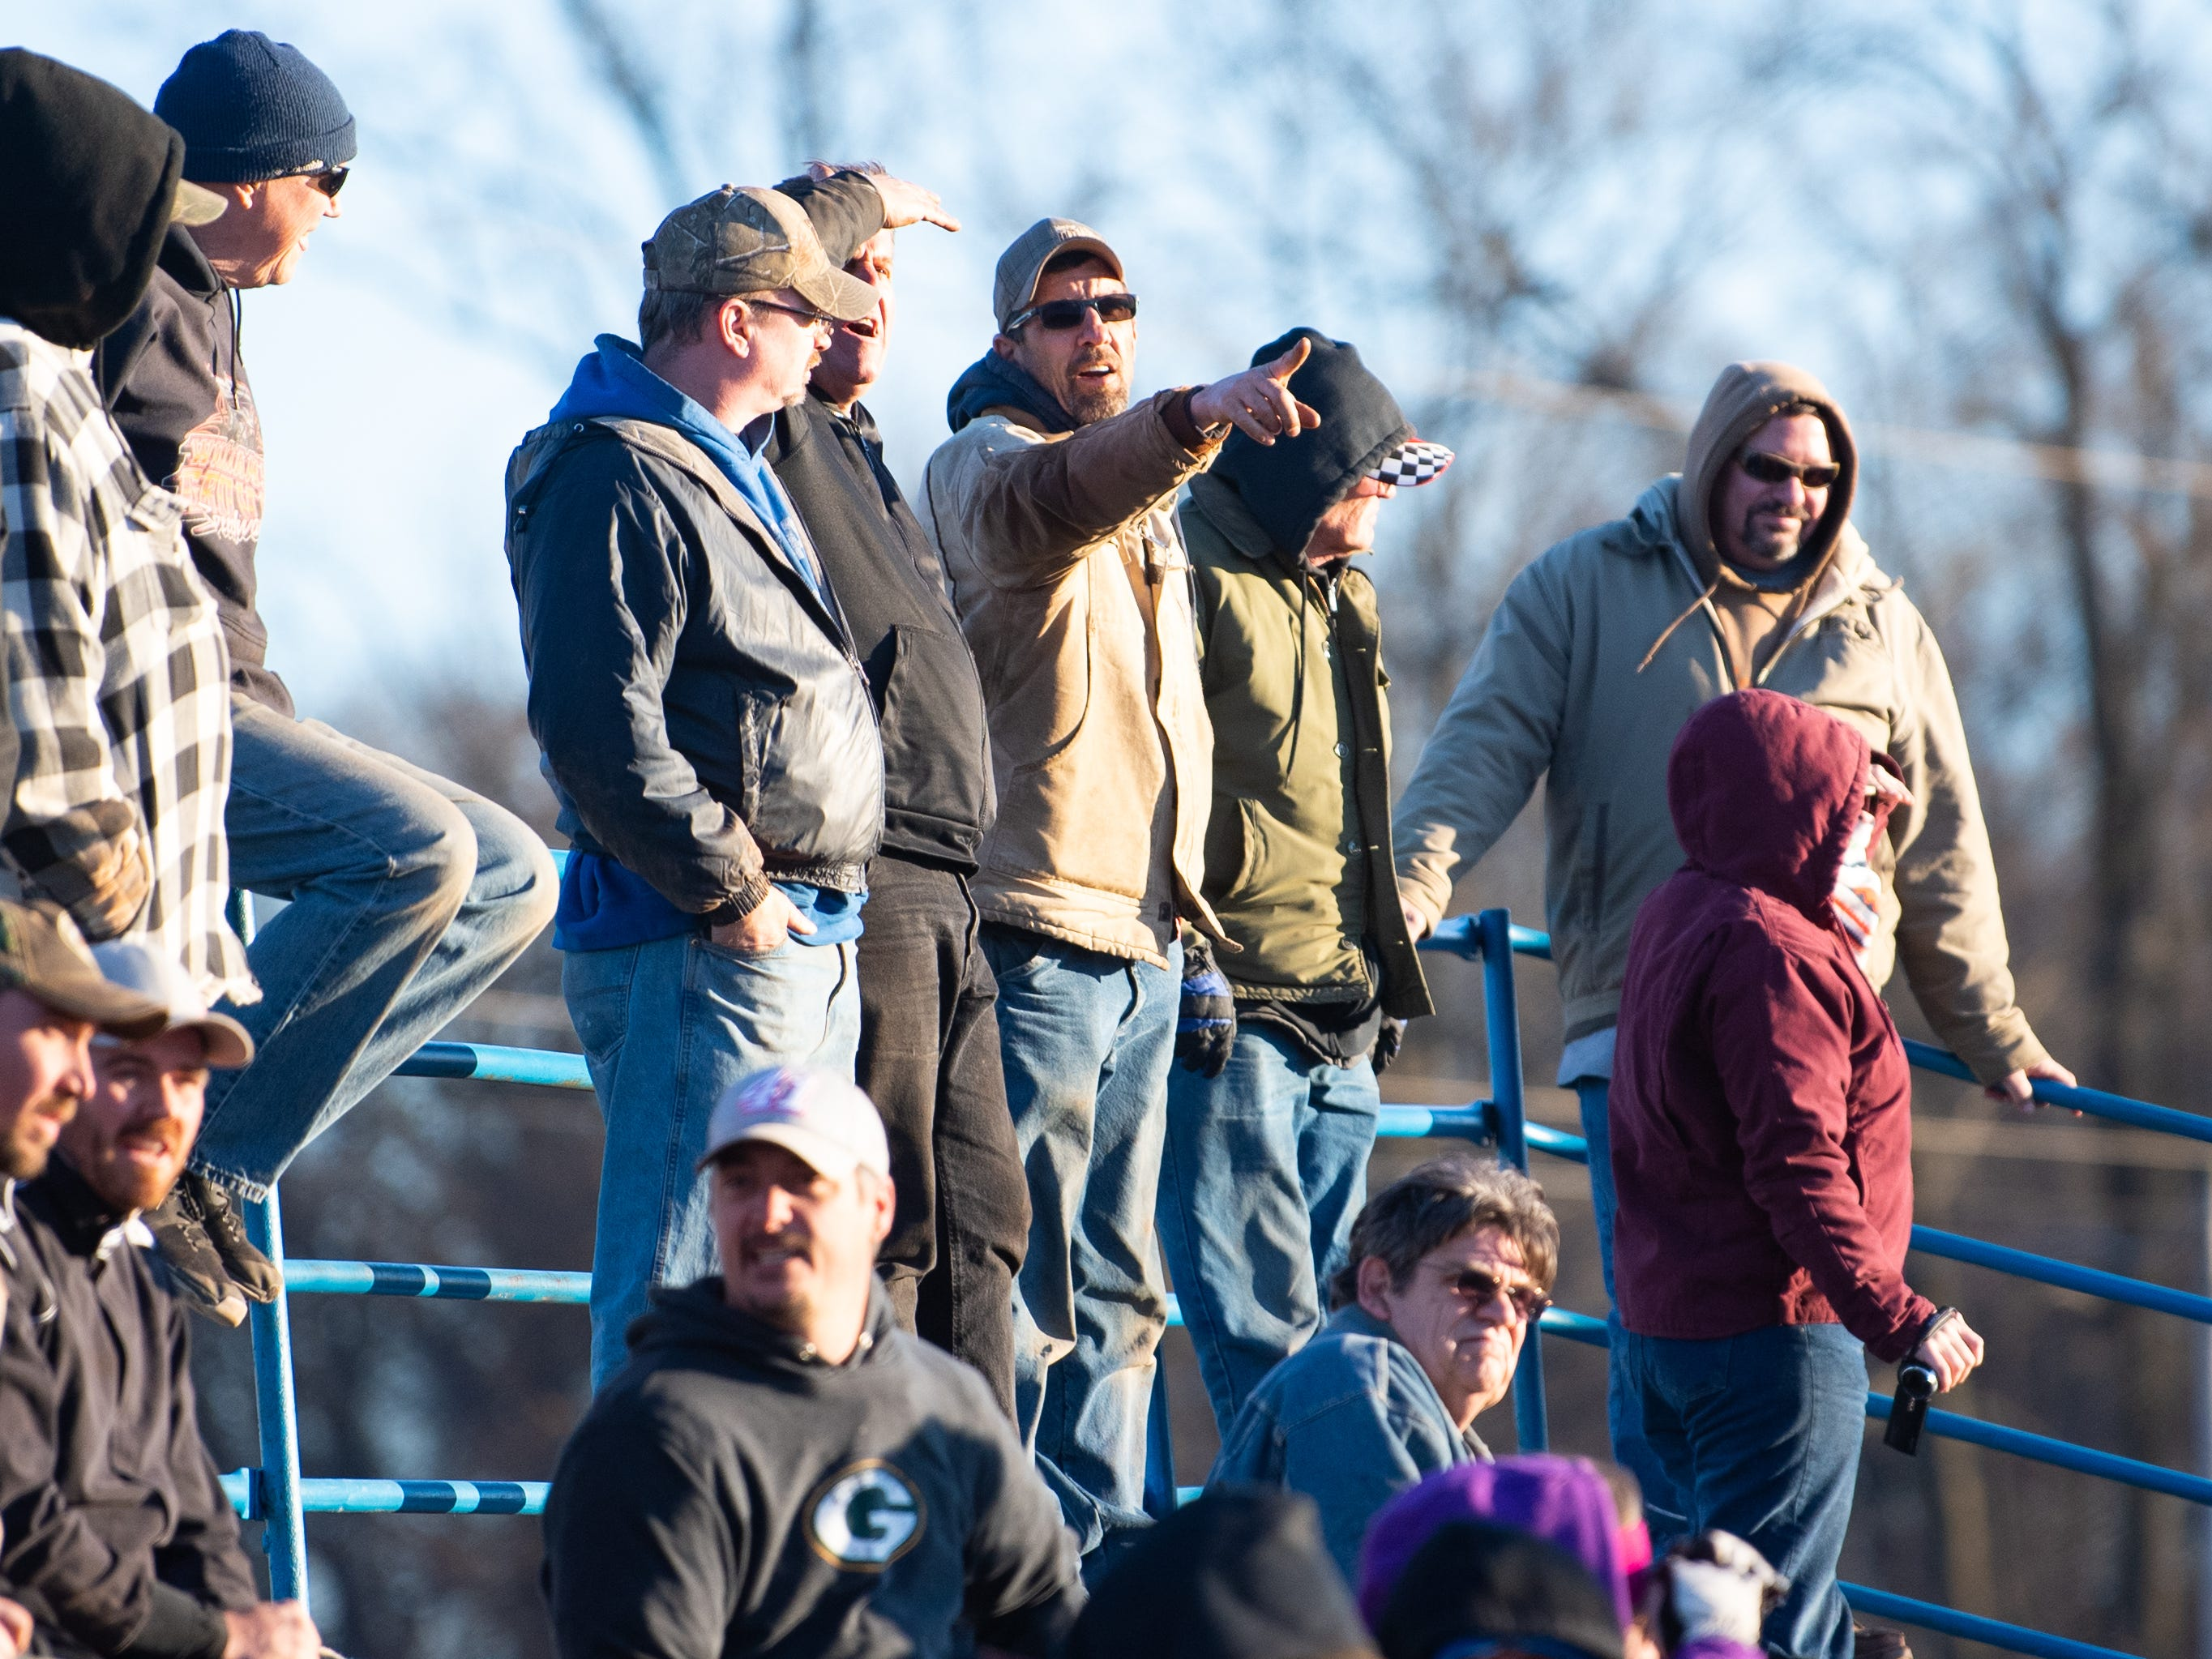 Spectators point out their favorite racers during the 2019 season opener at BAPS Motor Speedway, March 23, 2019.